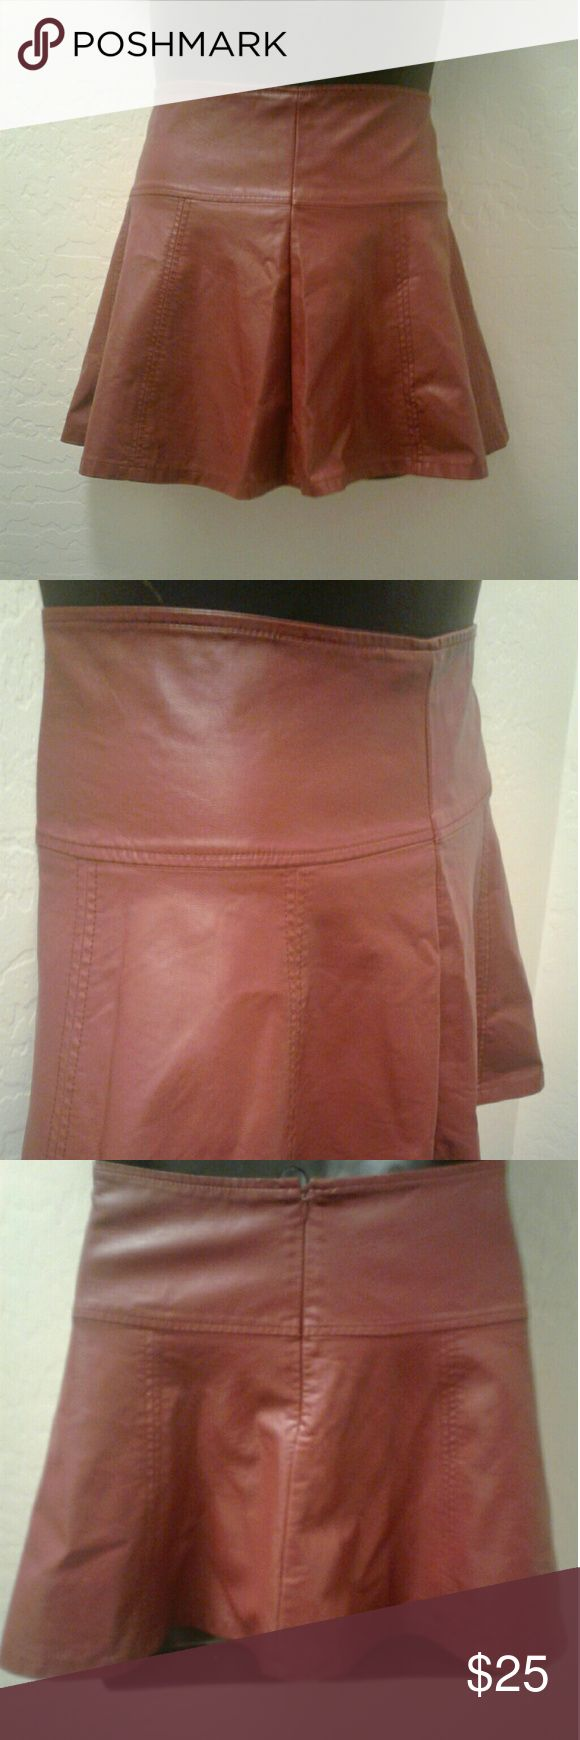 Sexy Toffee Leather Skater Skirt Cute short leather flare skirt. Unique toffee brown color w/ soft butter leather feel. Stitched seams and pleats. Lining: rayon. Shell: Polyurethane. NWOT. Forever 21 Exclusive Skirts Circle & Skater